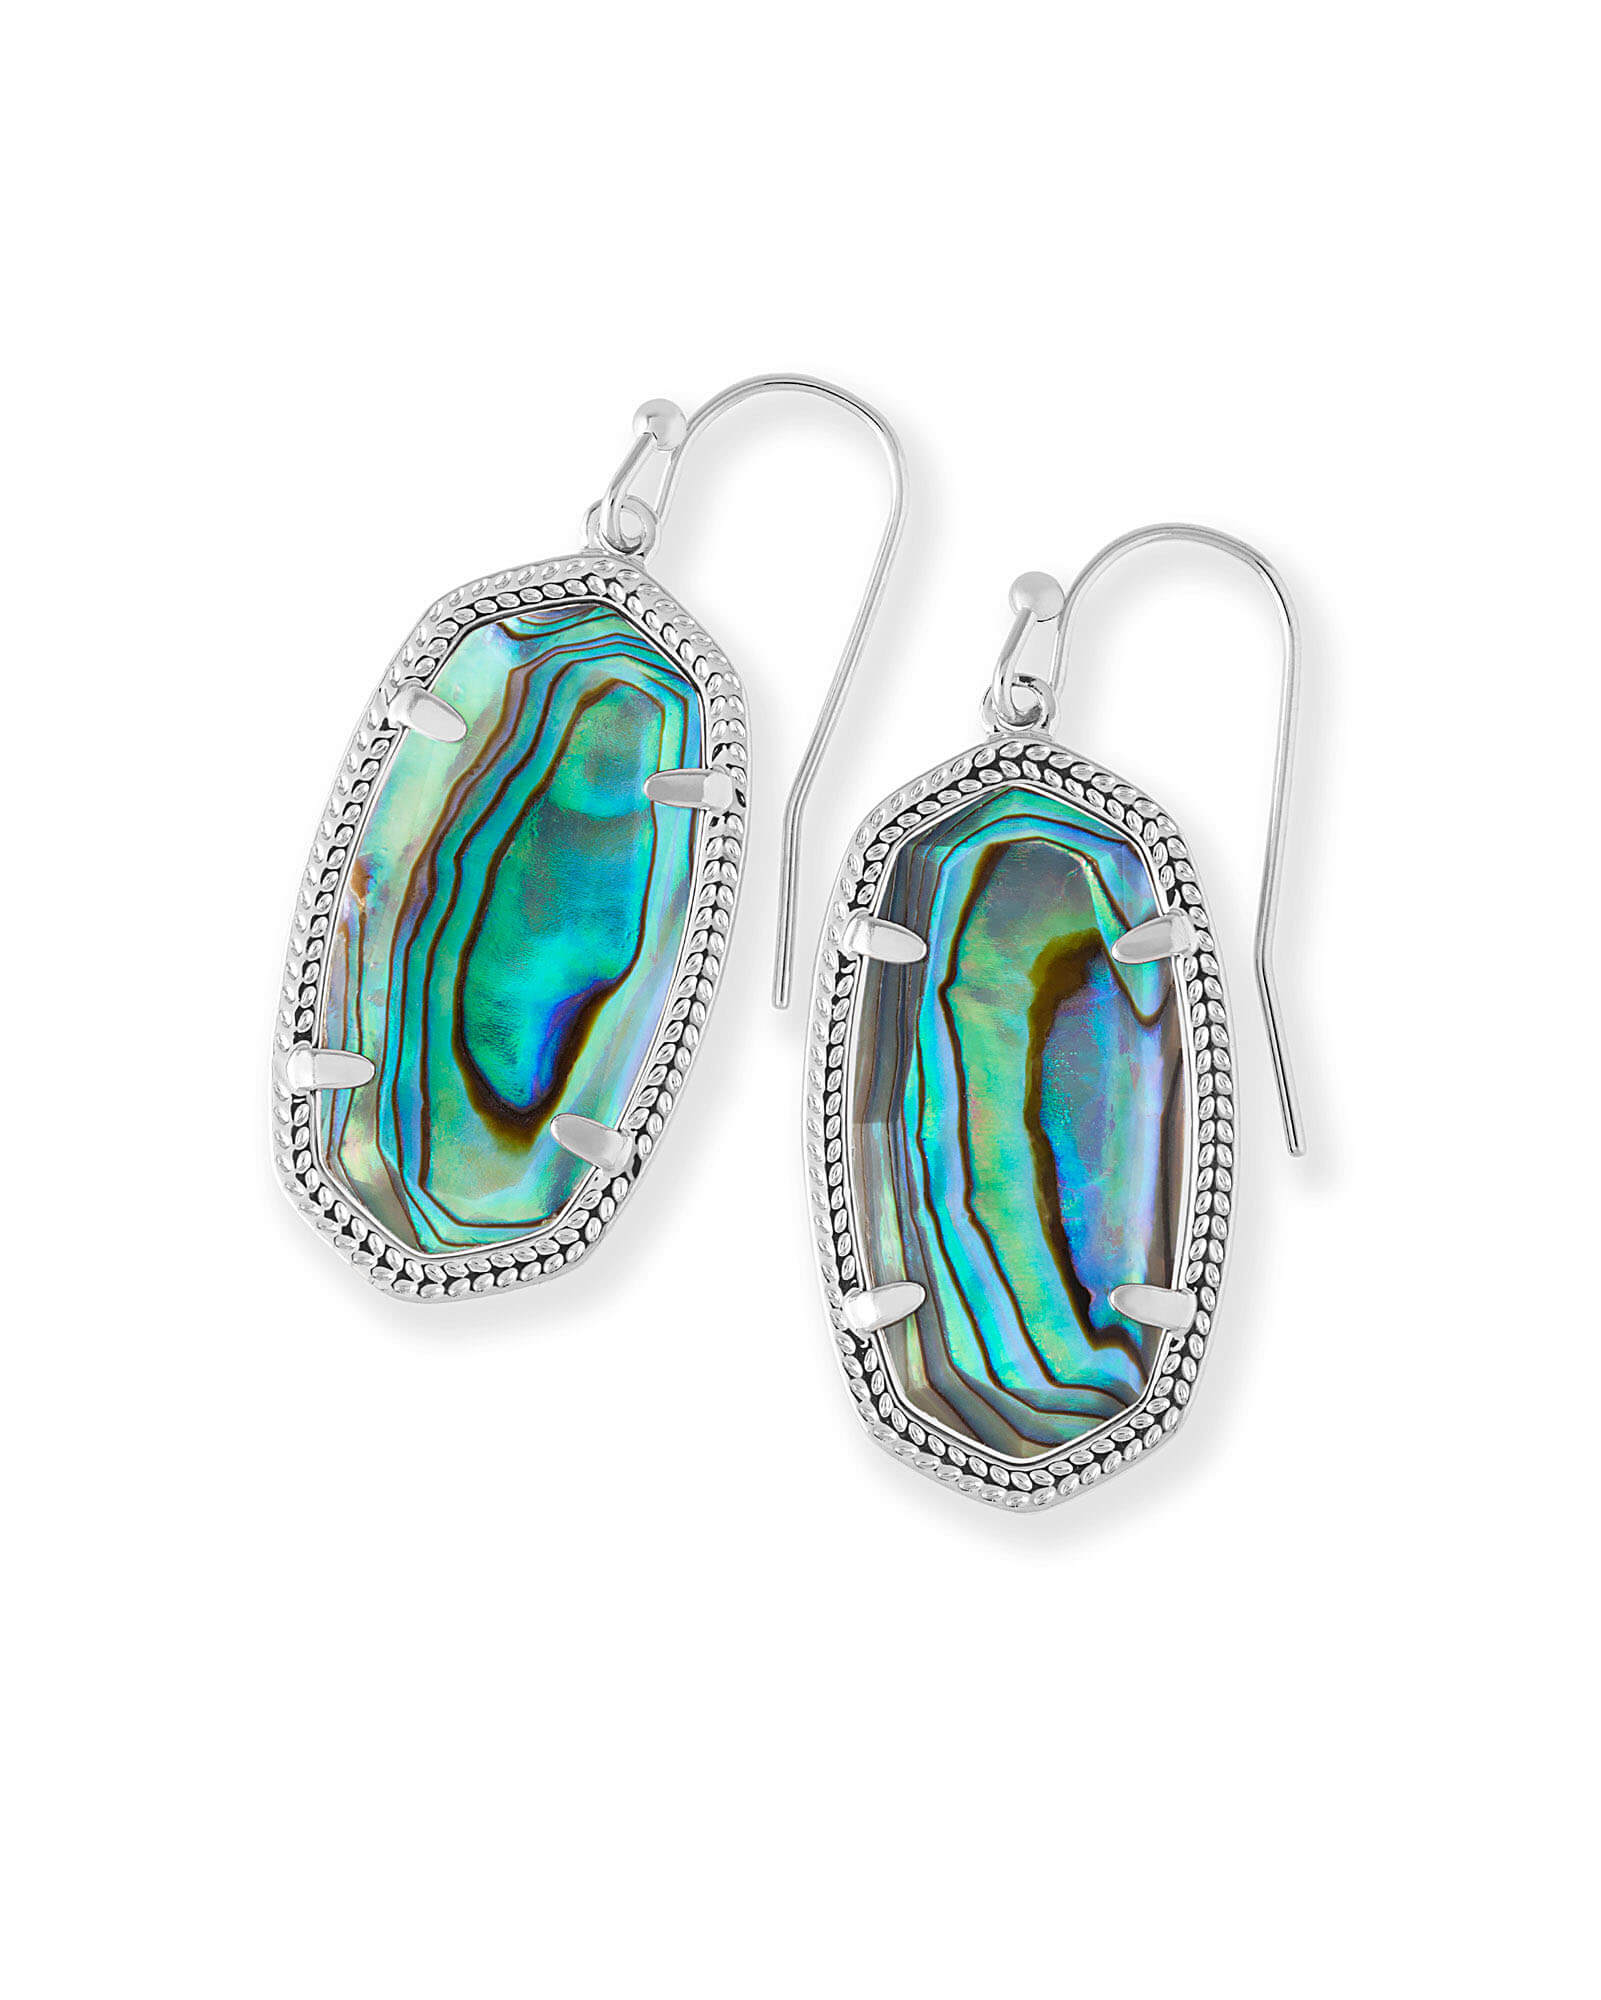 Dani Silver Drop Earrings in Abalone Shell